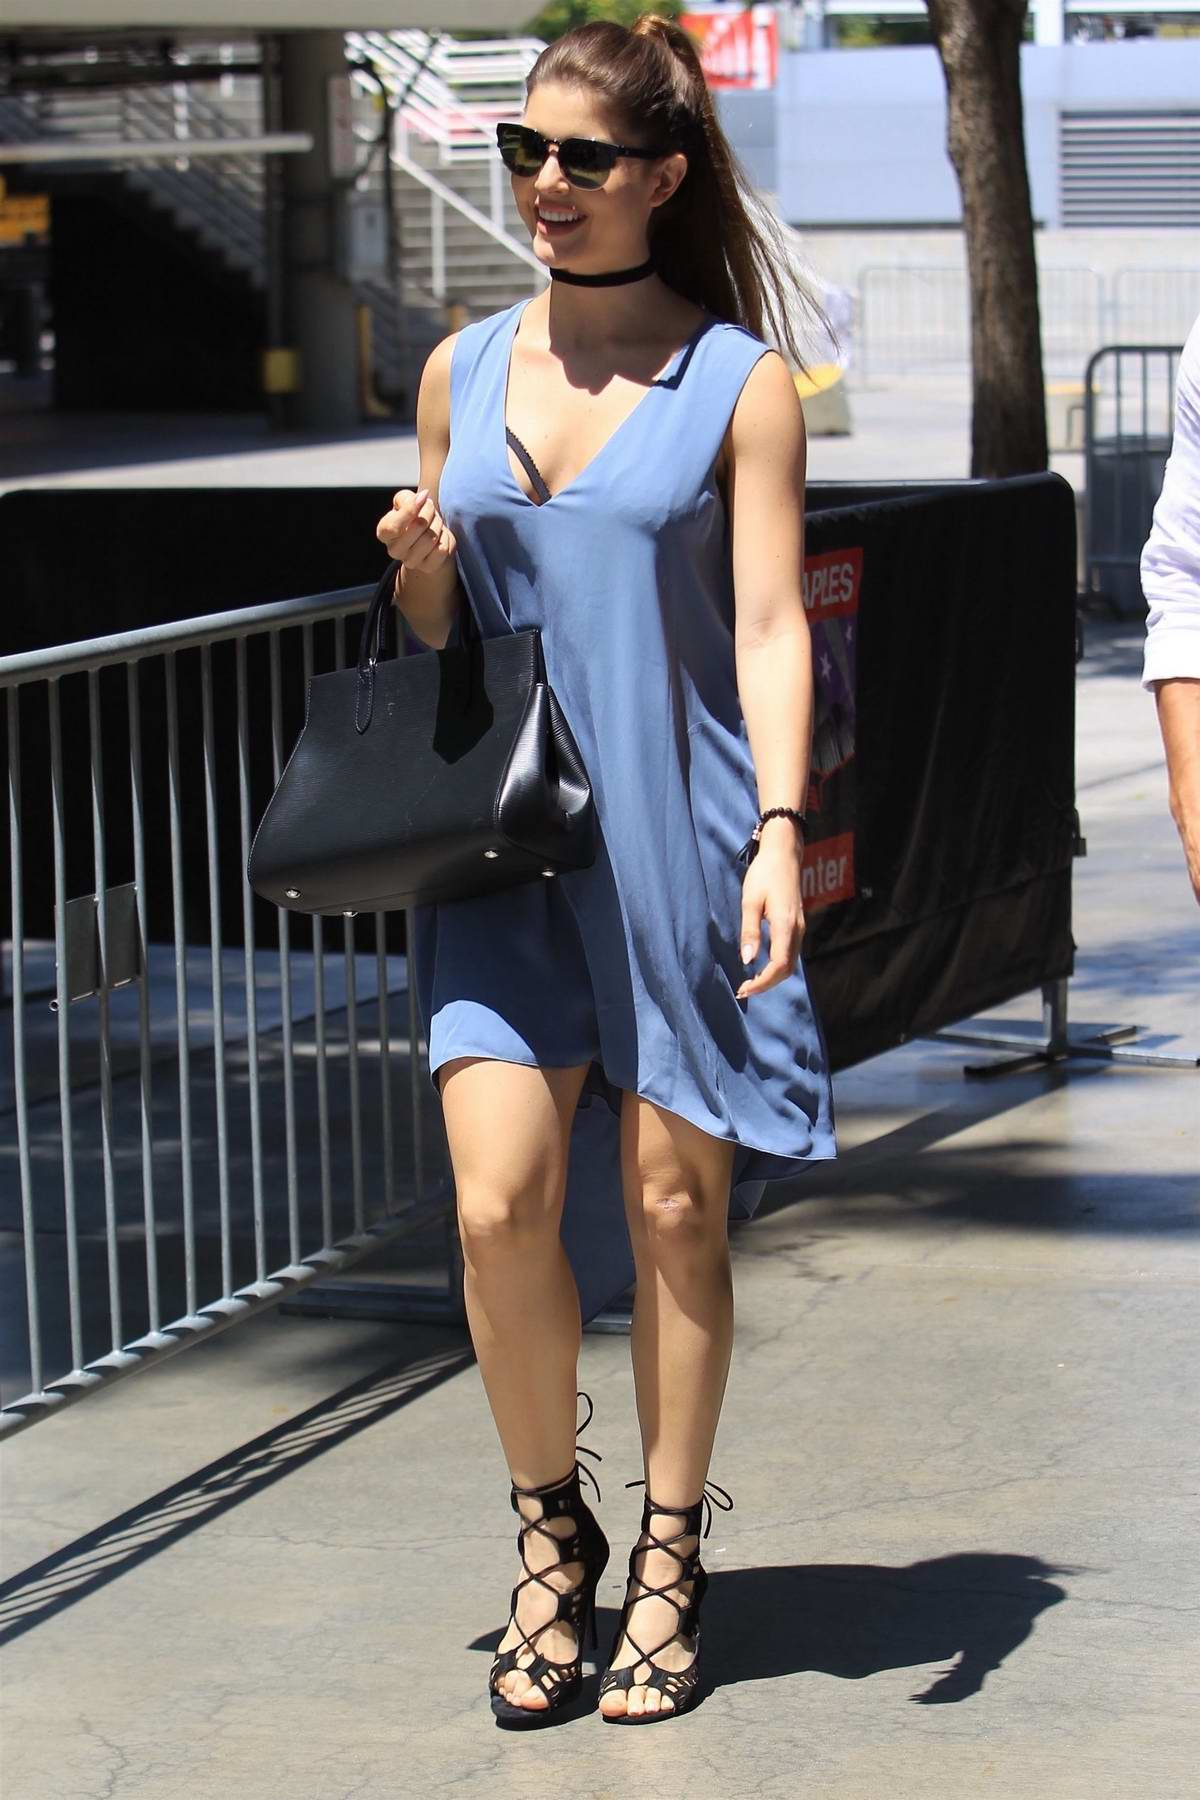 Amanda Cerny arriving for the Big 3 Basketball event at Staples Center in Los Angeles